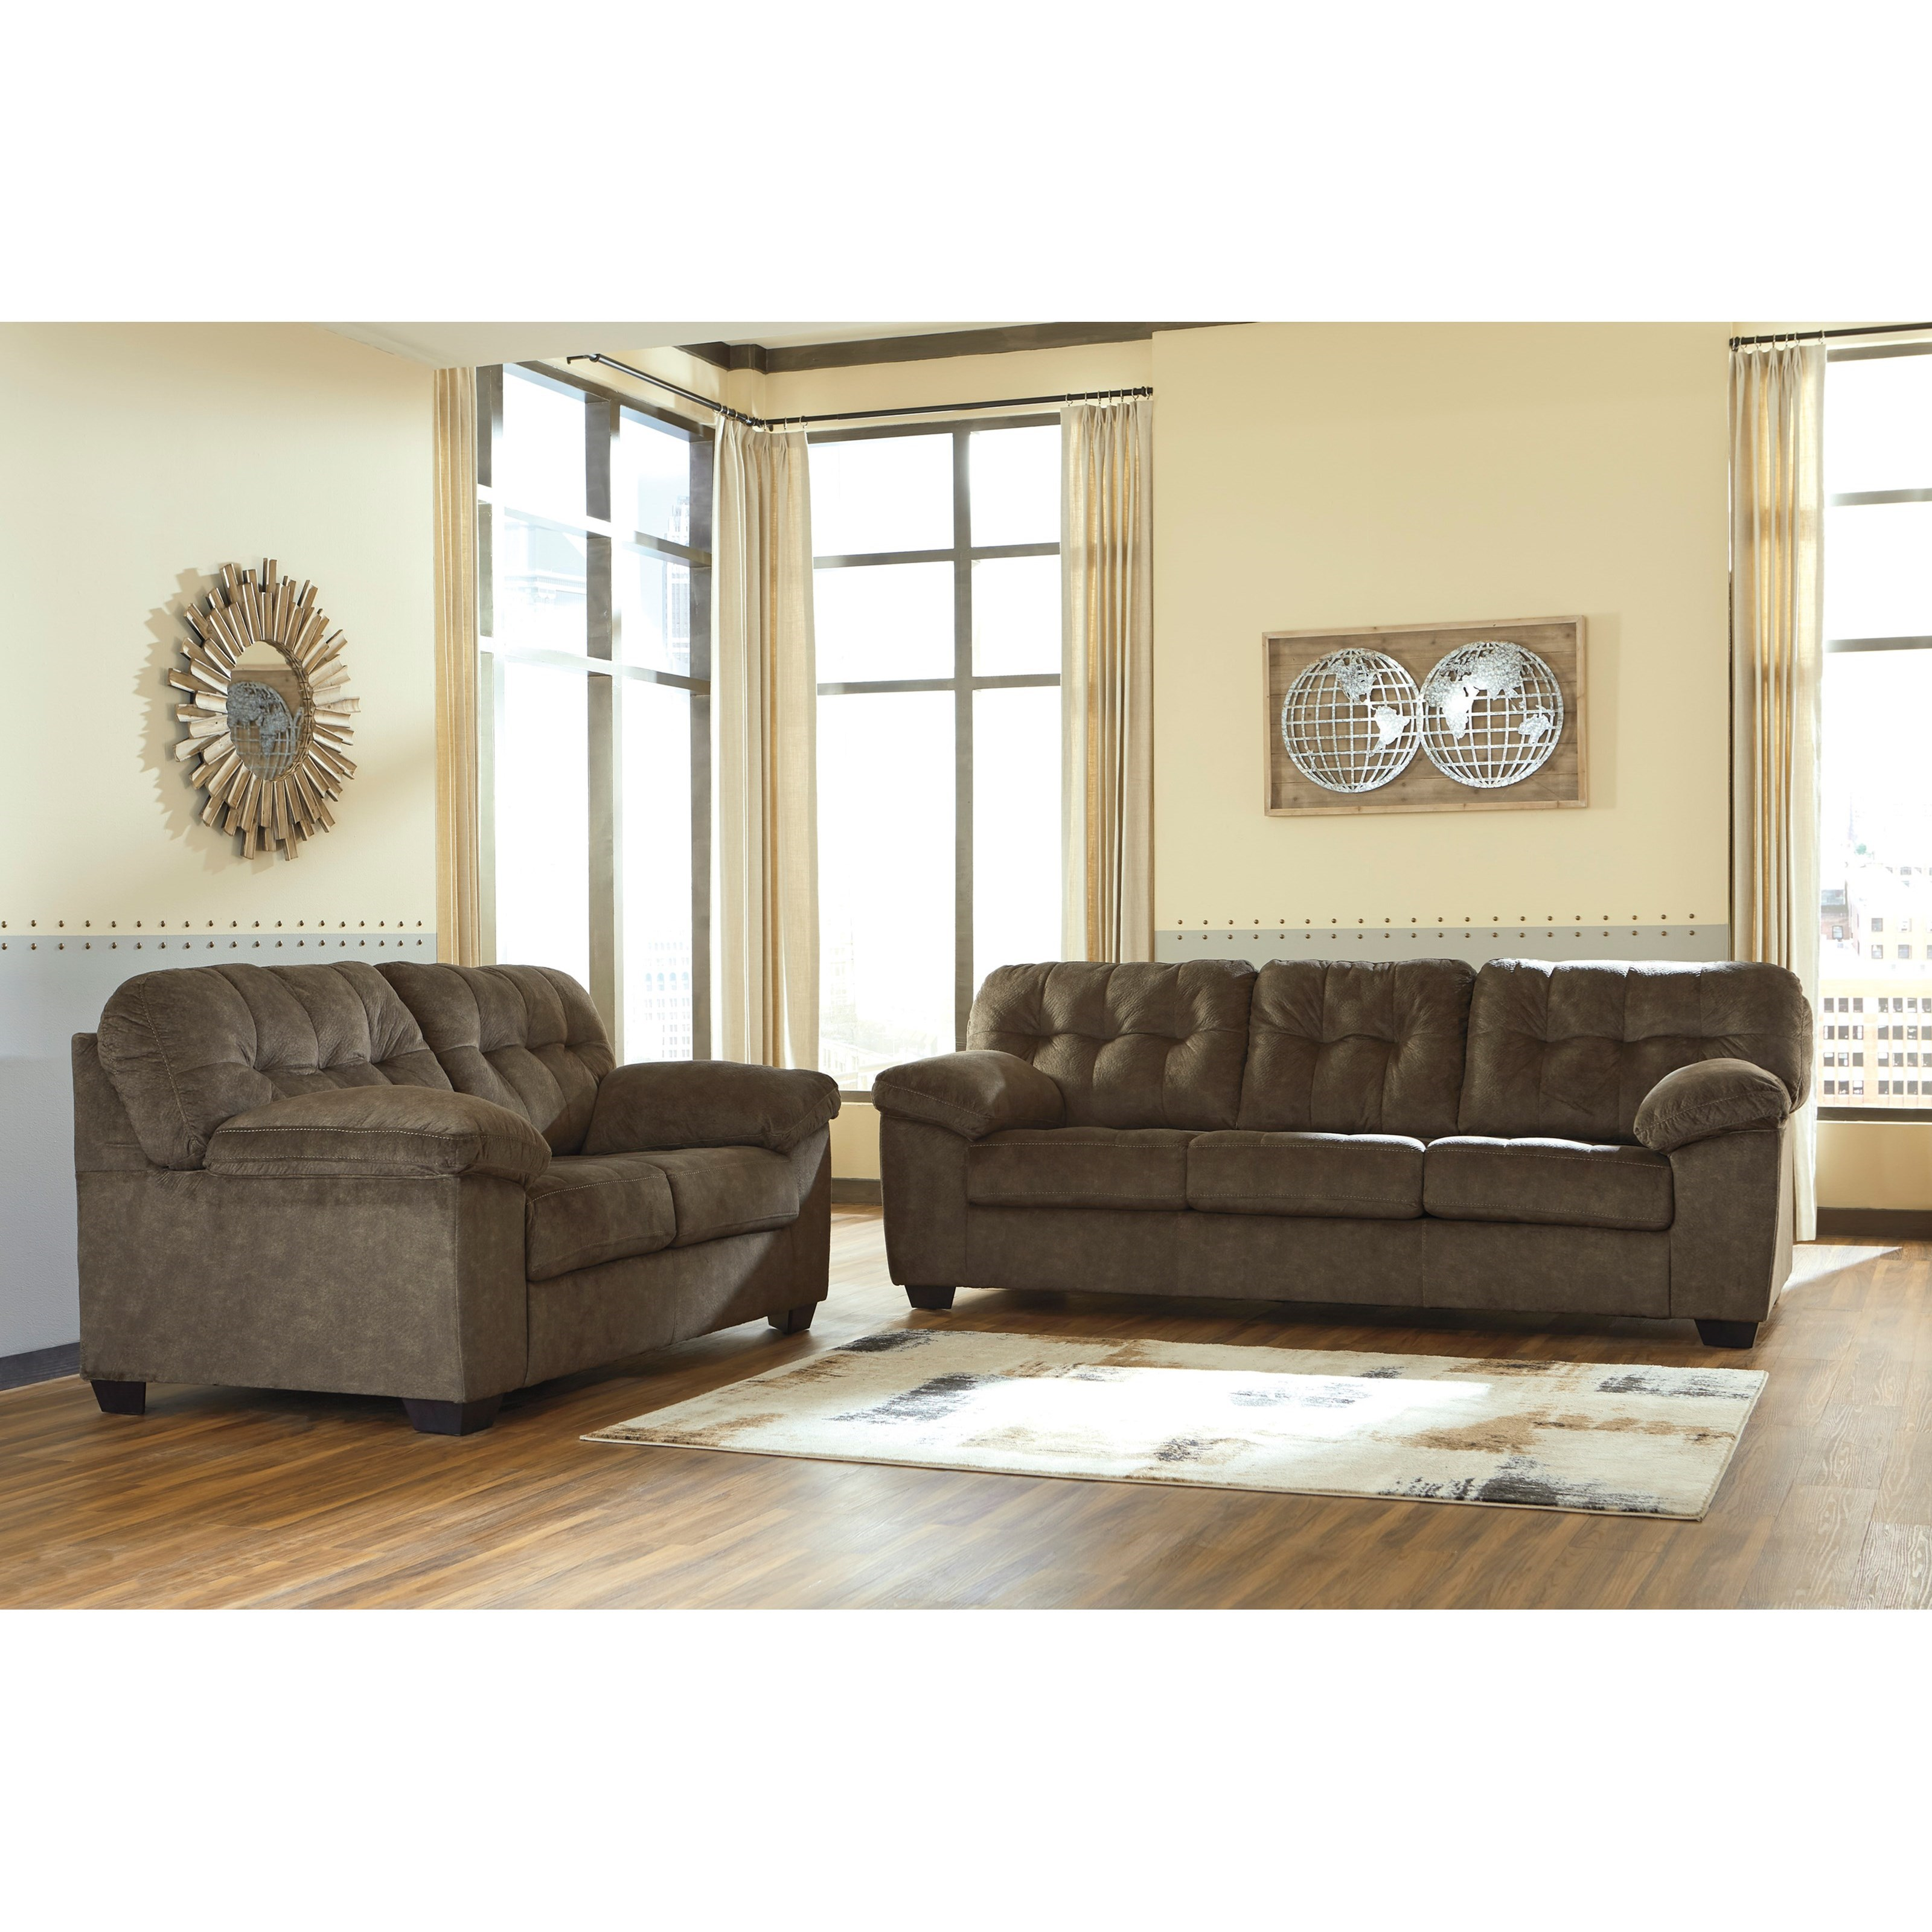 Accrington Stationary Living Room Group by Benchcraft at Virginia Furniture Market